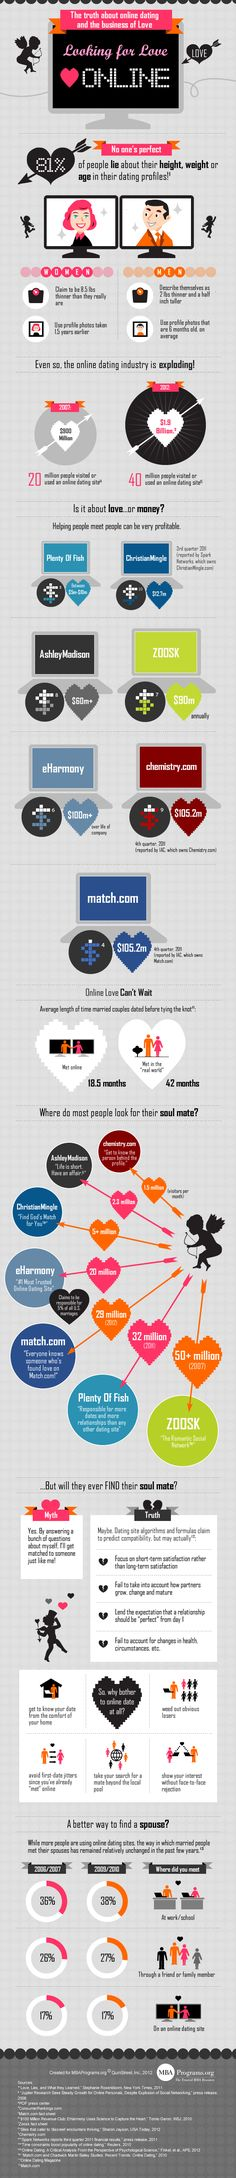 The truth about online dating & the business of Love